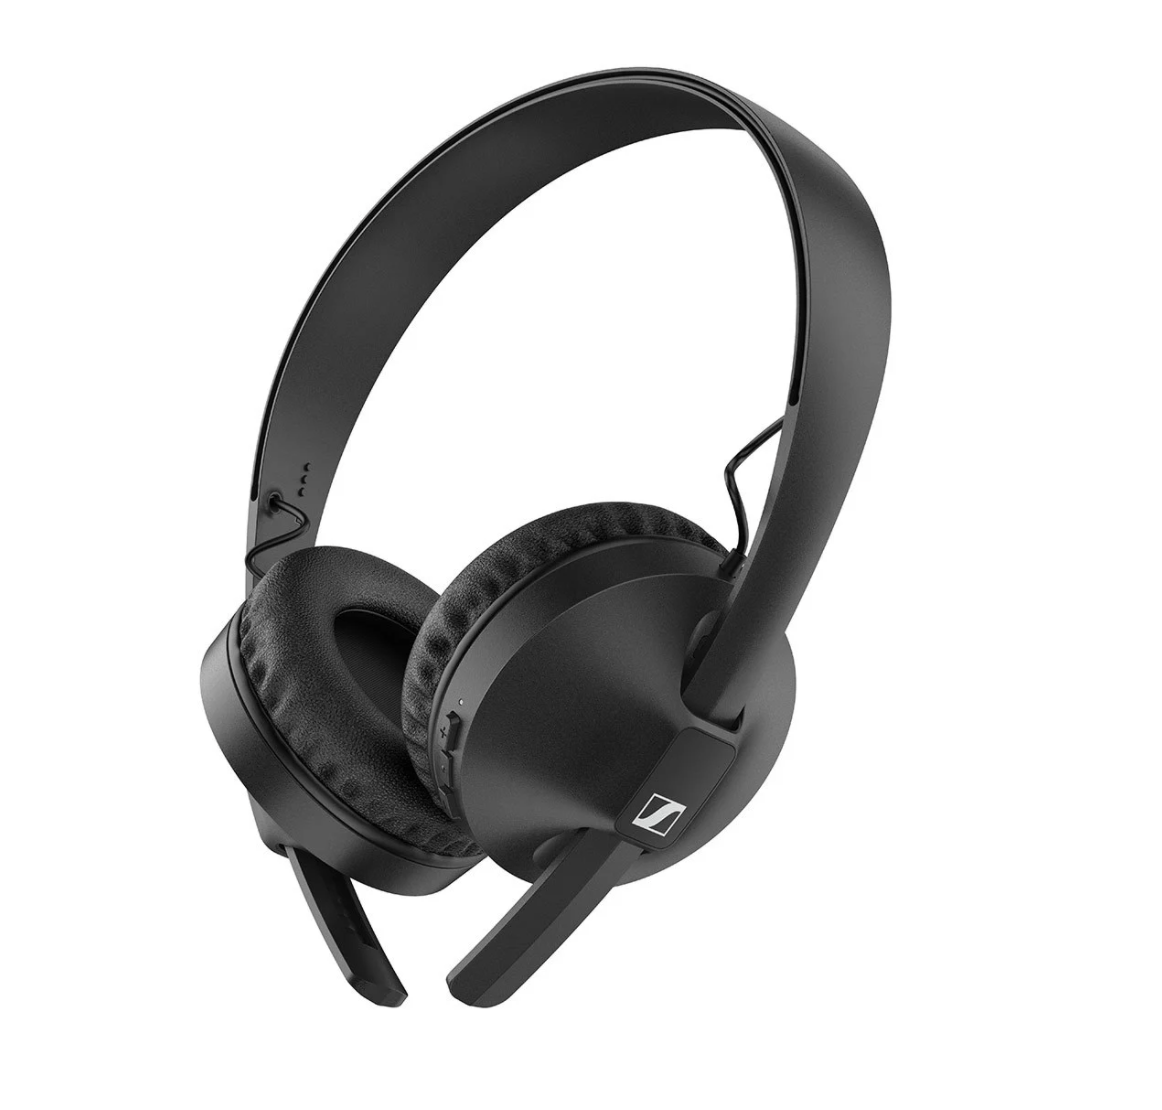 Sennheiser HD 250BT review